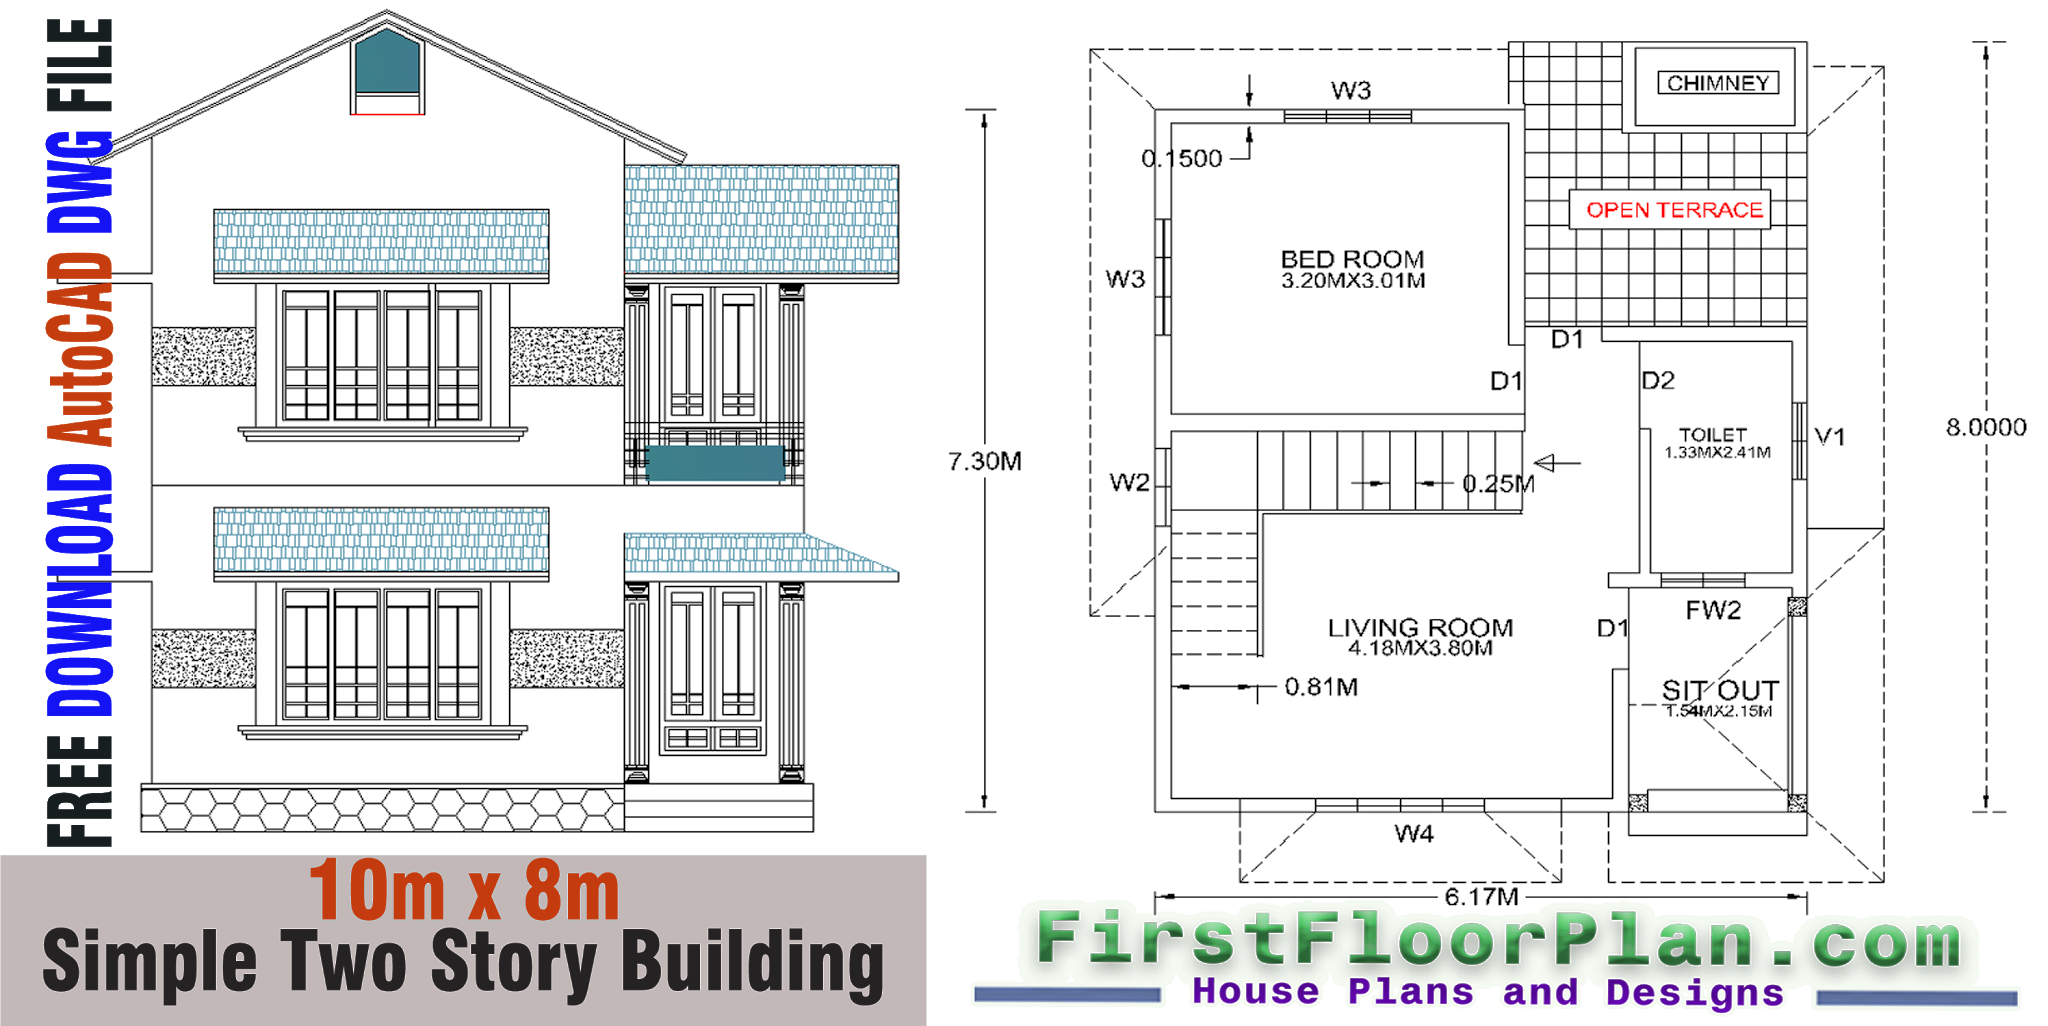 Simple Two Story Building Plans and Designs | 550 Sq Ft